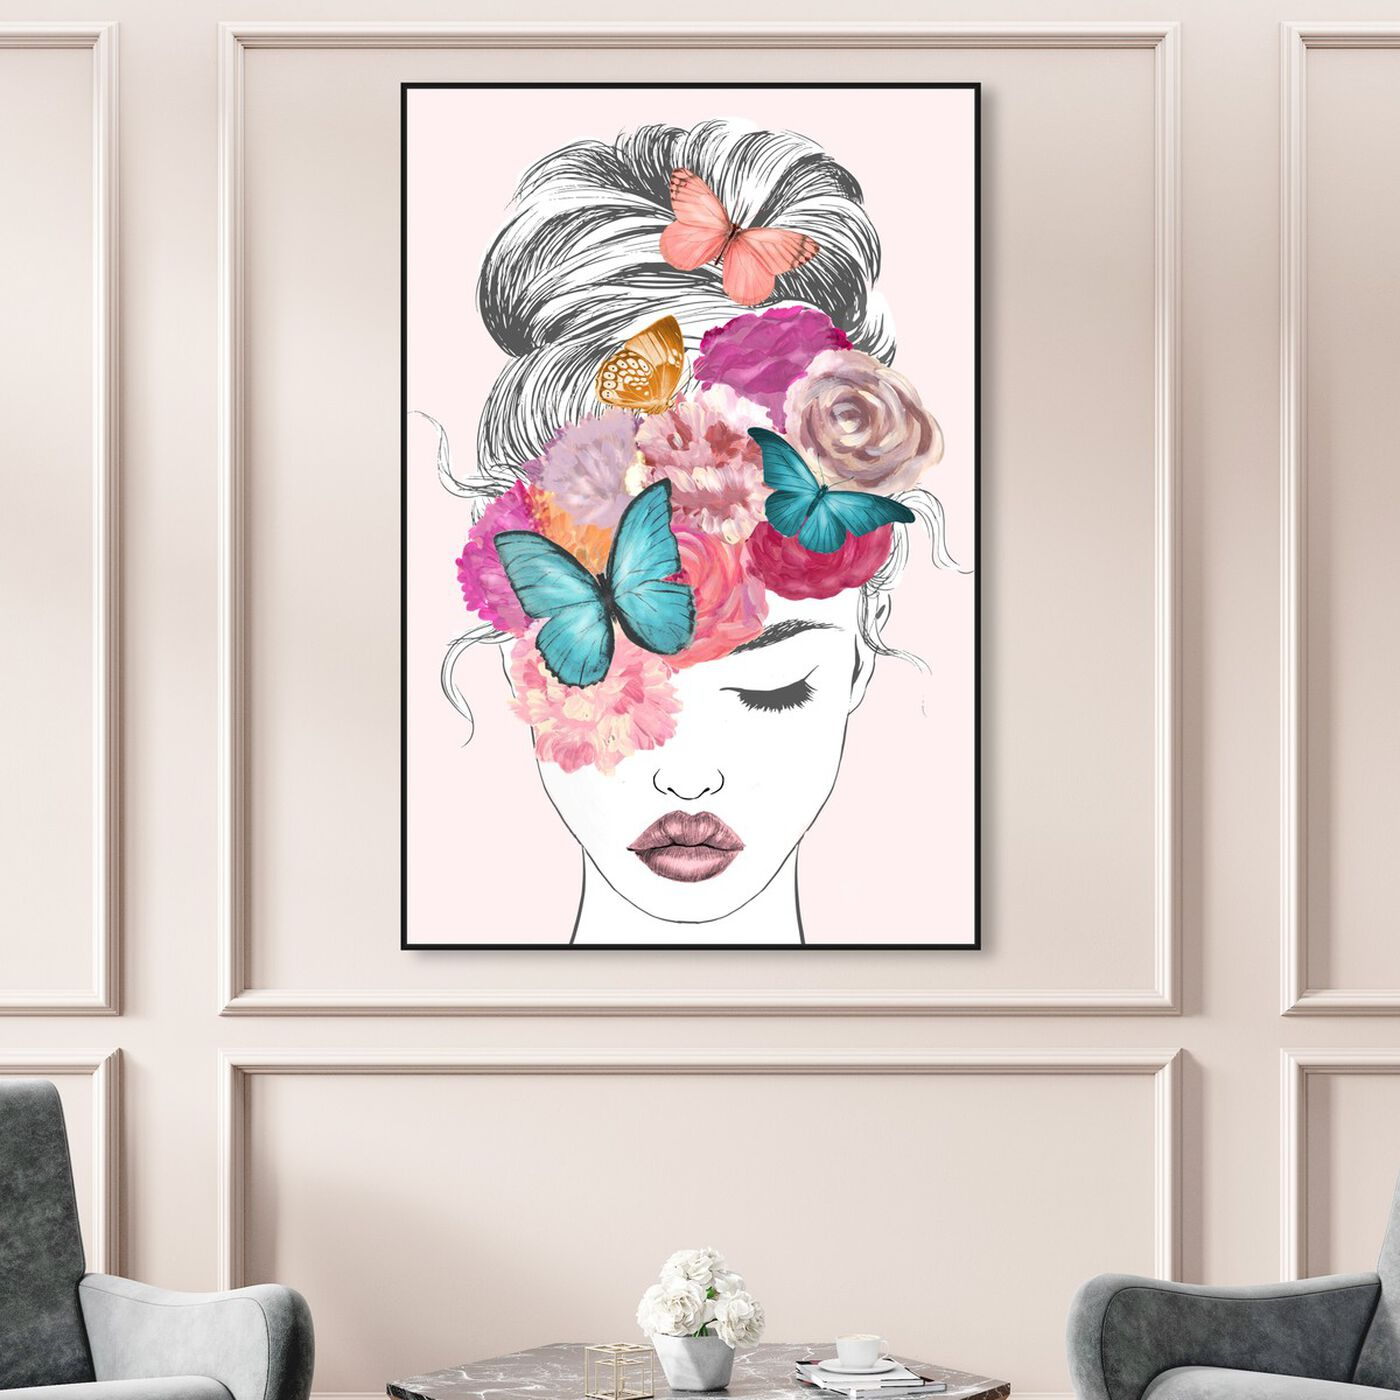 Hanging view of Butterflies in My Head featuring fashion and glam and portraits art.